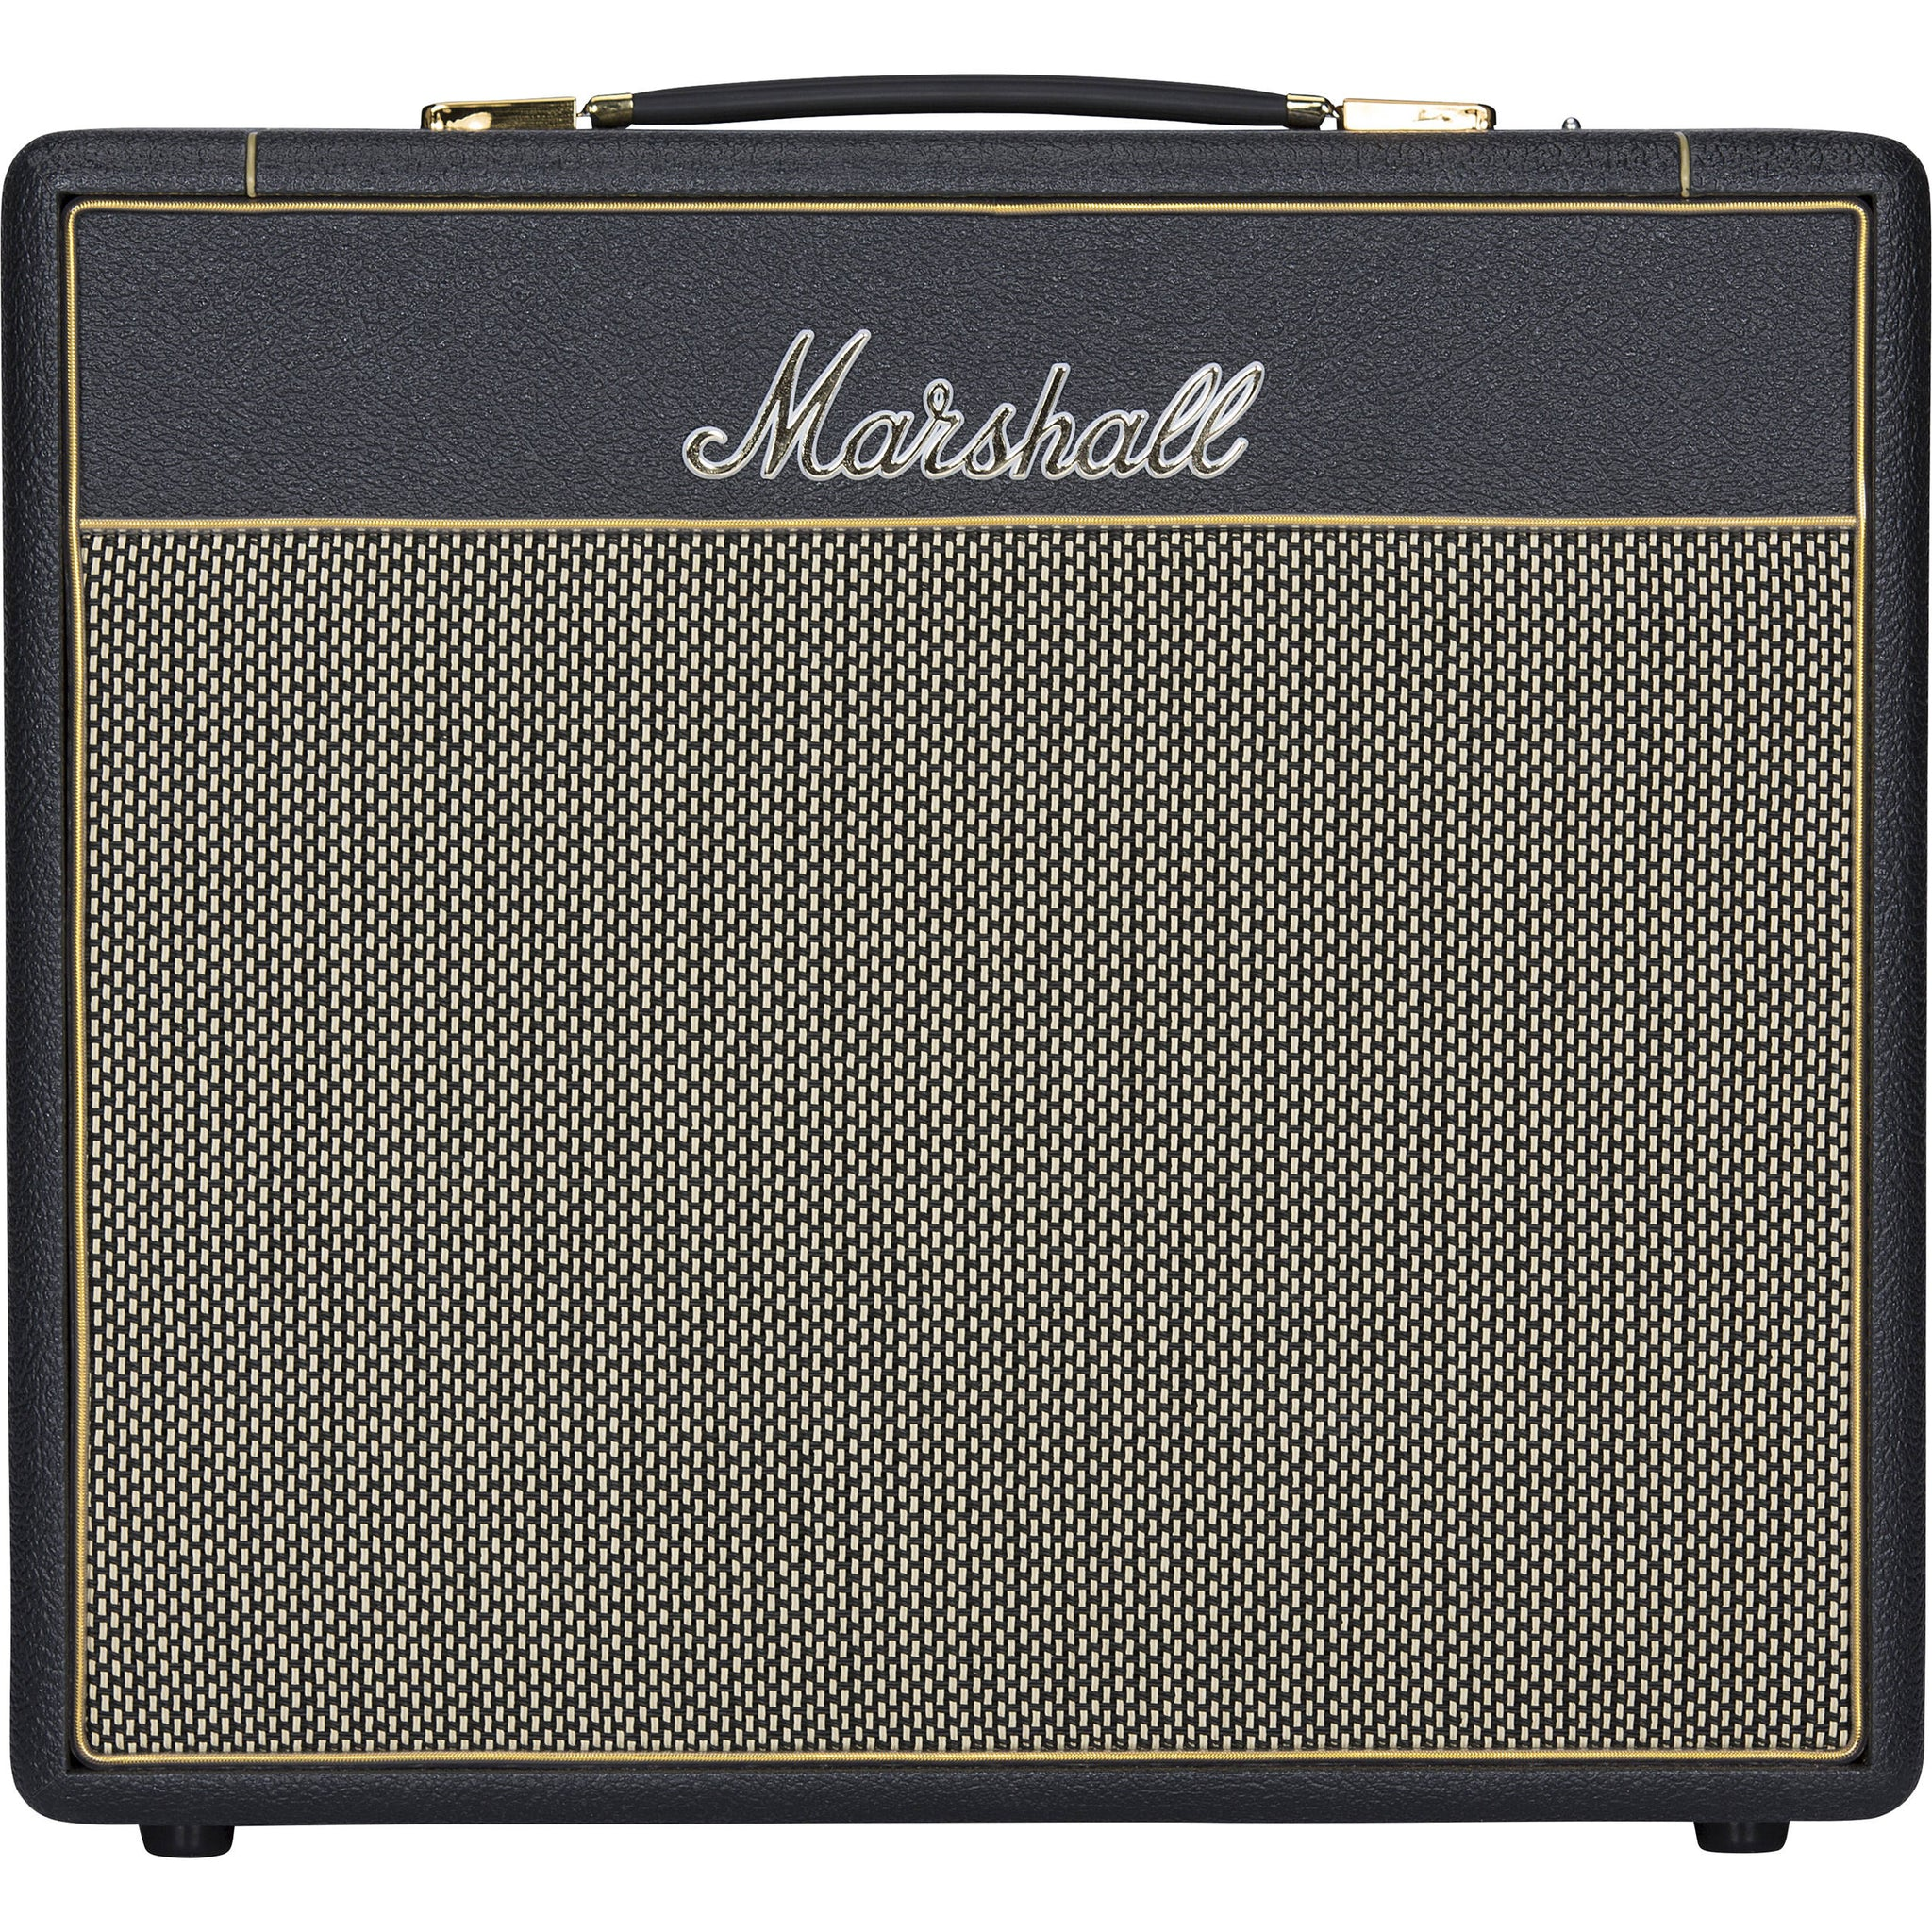 "Marshall SV20C Studio Vintage 1x10"" 20/5-watt Tube Combo Amp 